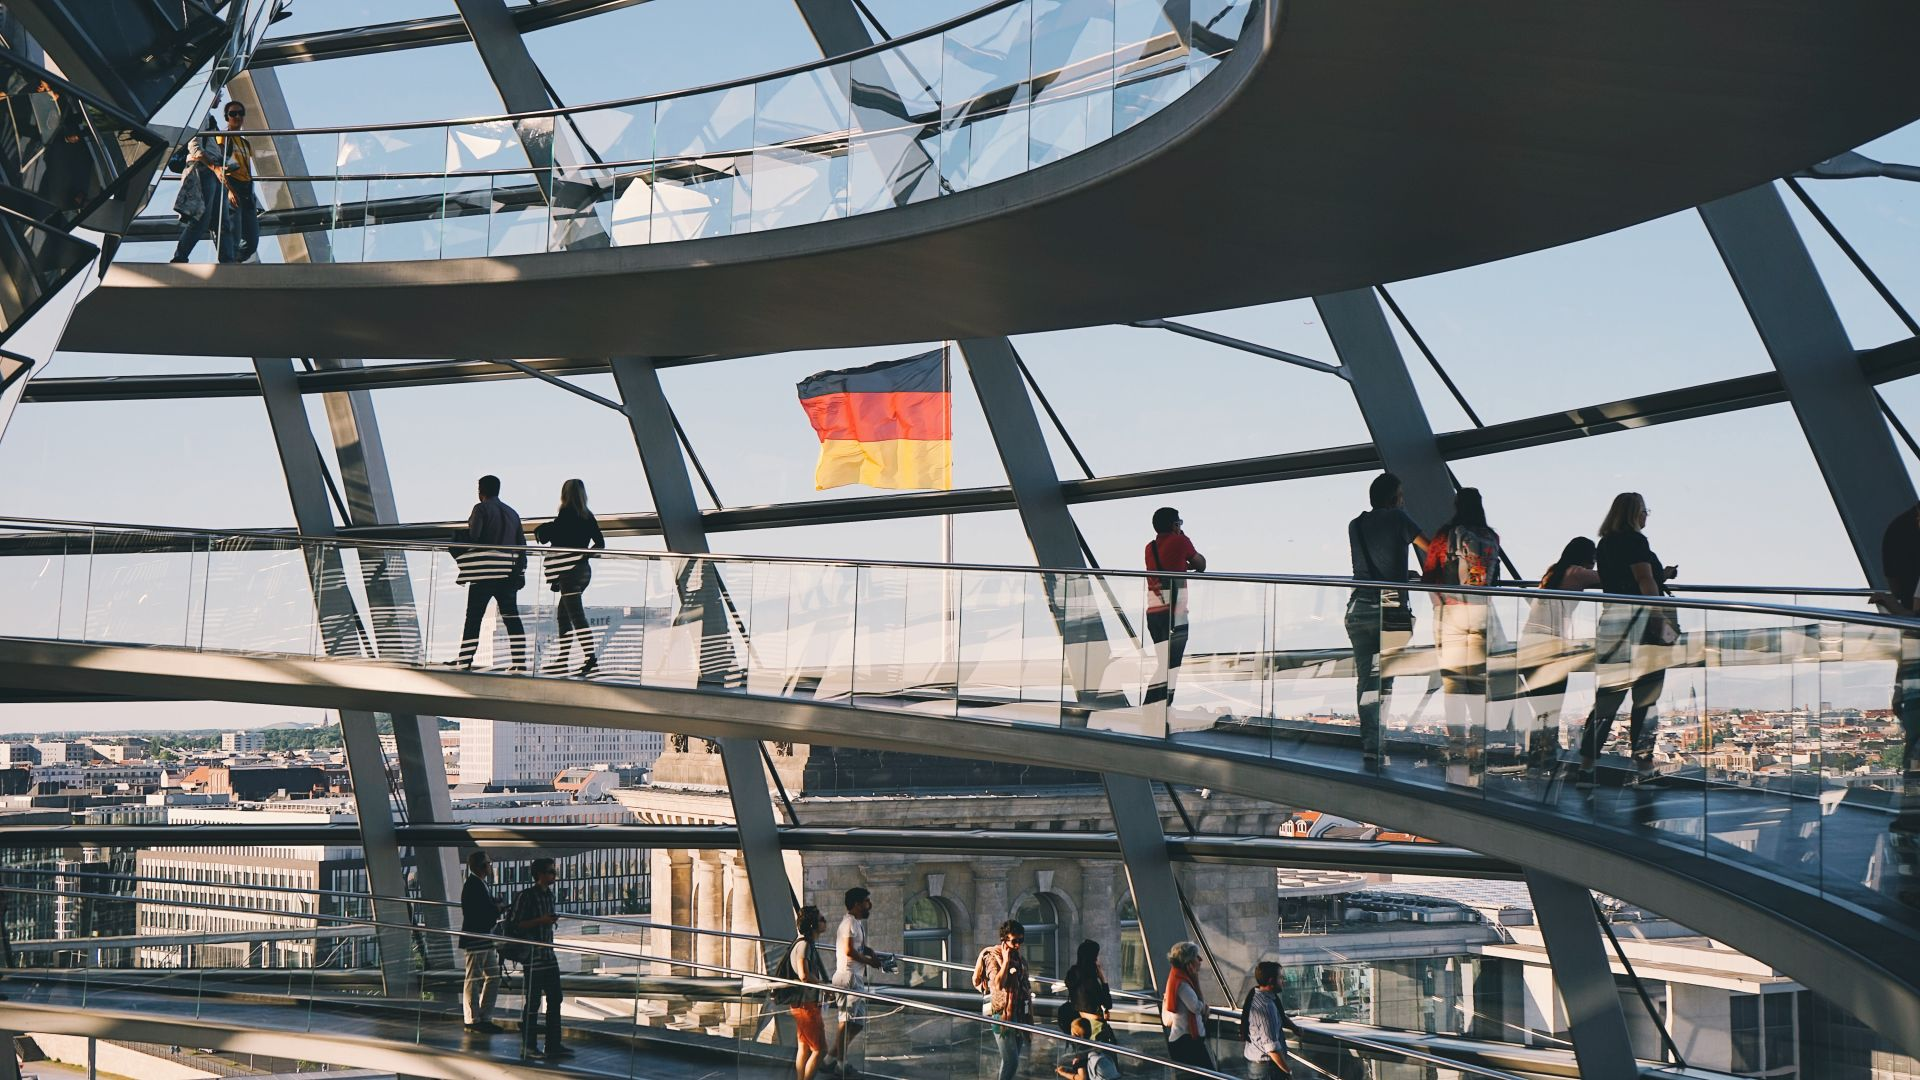 Germans more aware of global challenges as a result of COVID-19